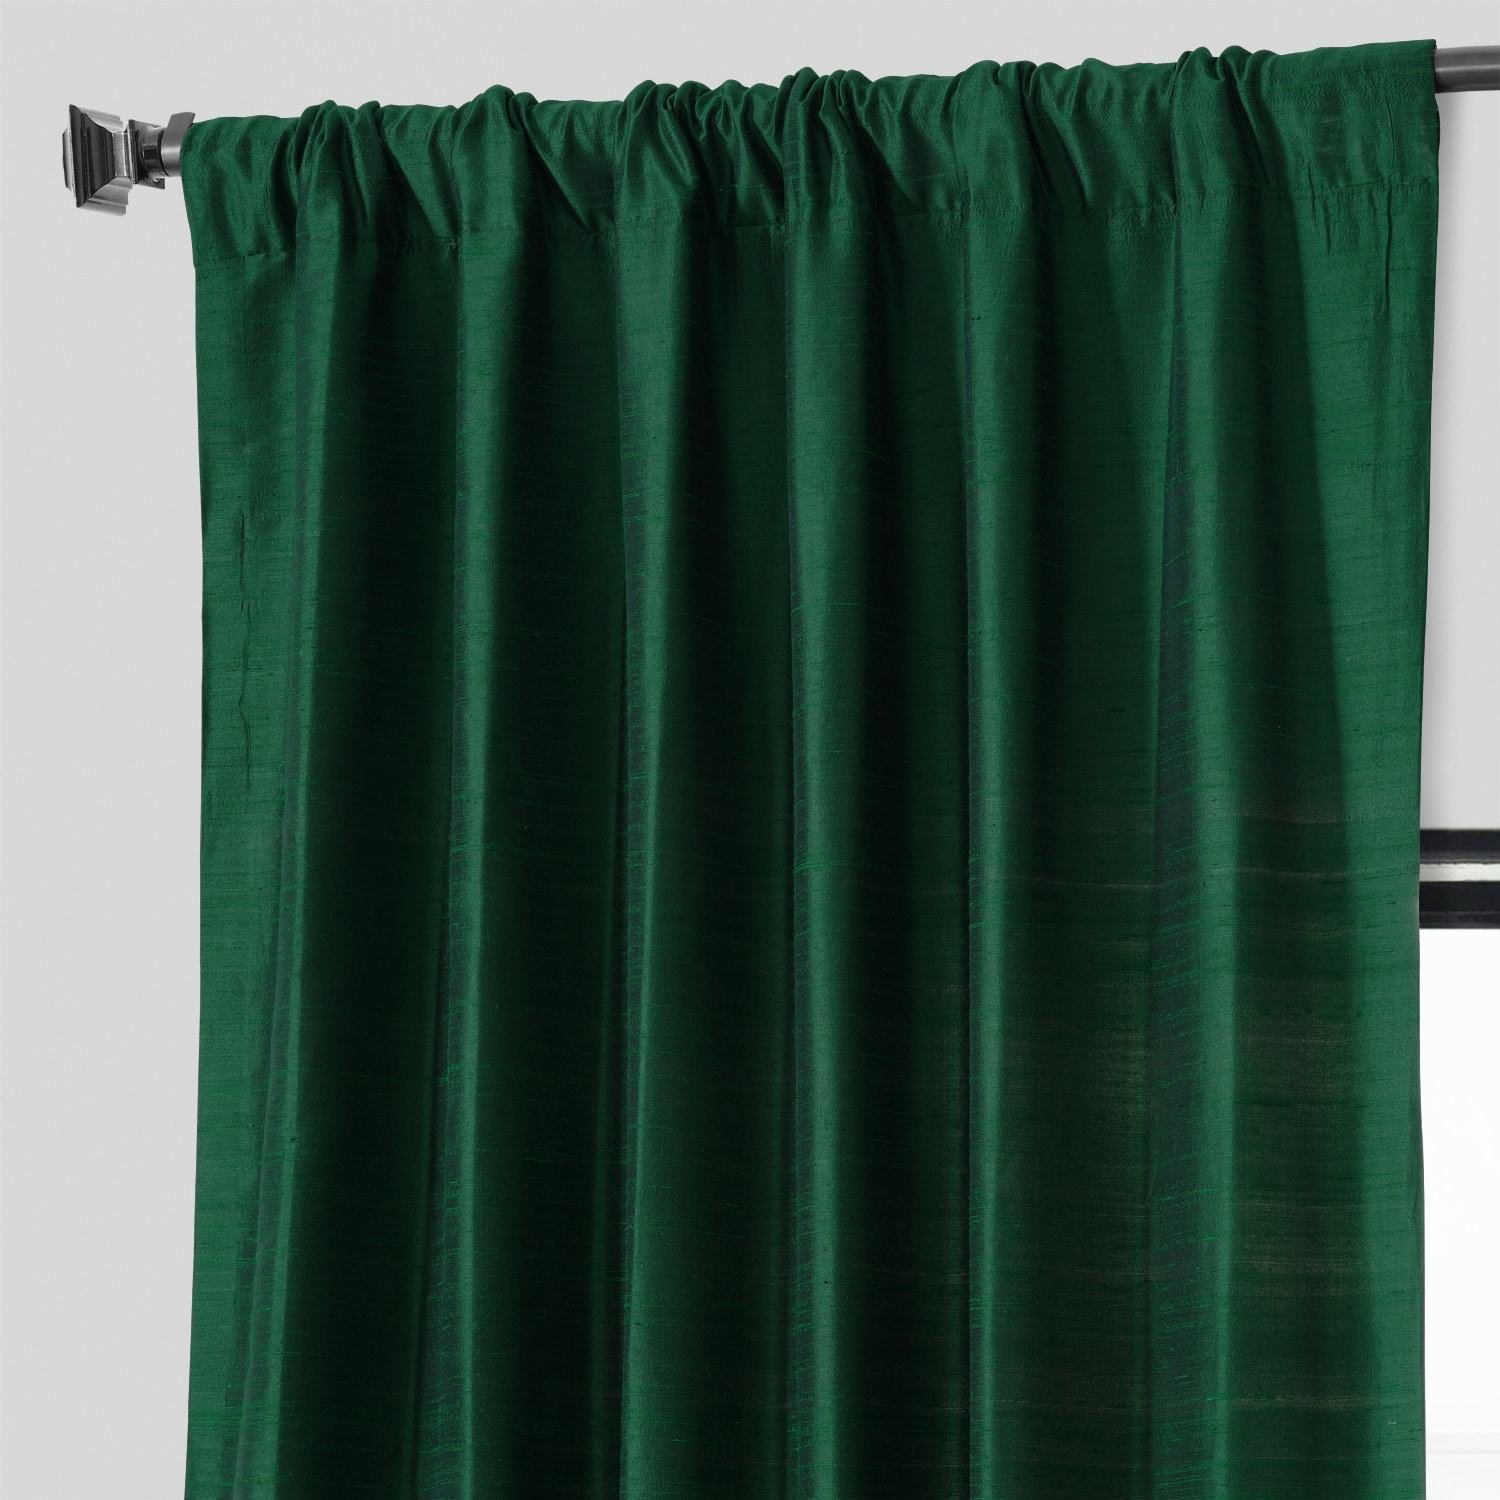 Midnight Clover Textured Dupioni Silk Curtain